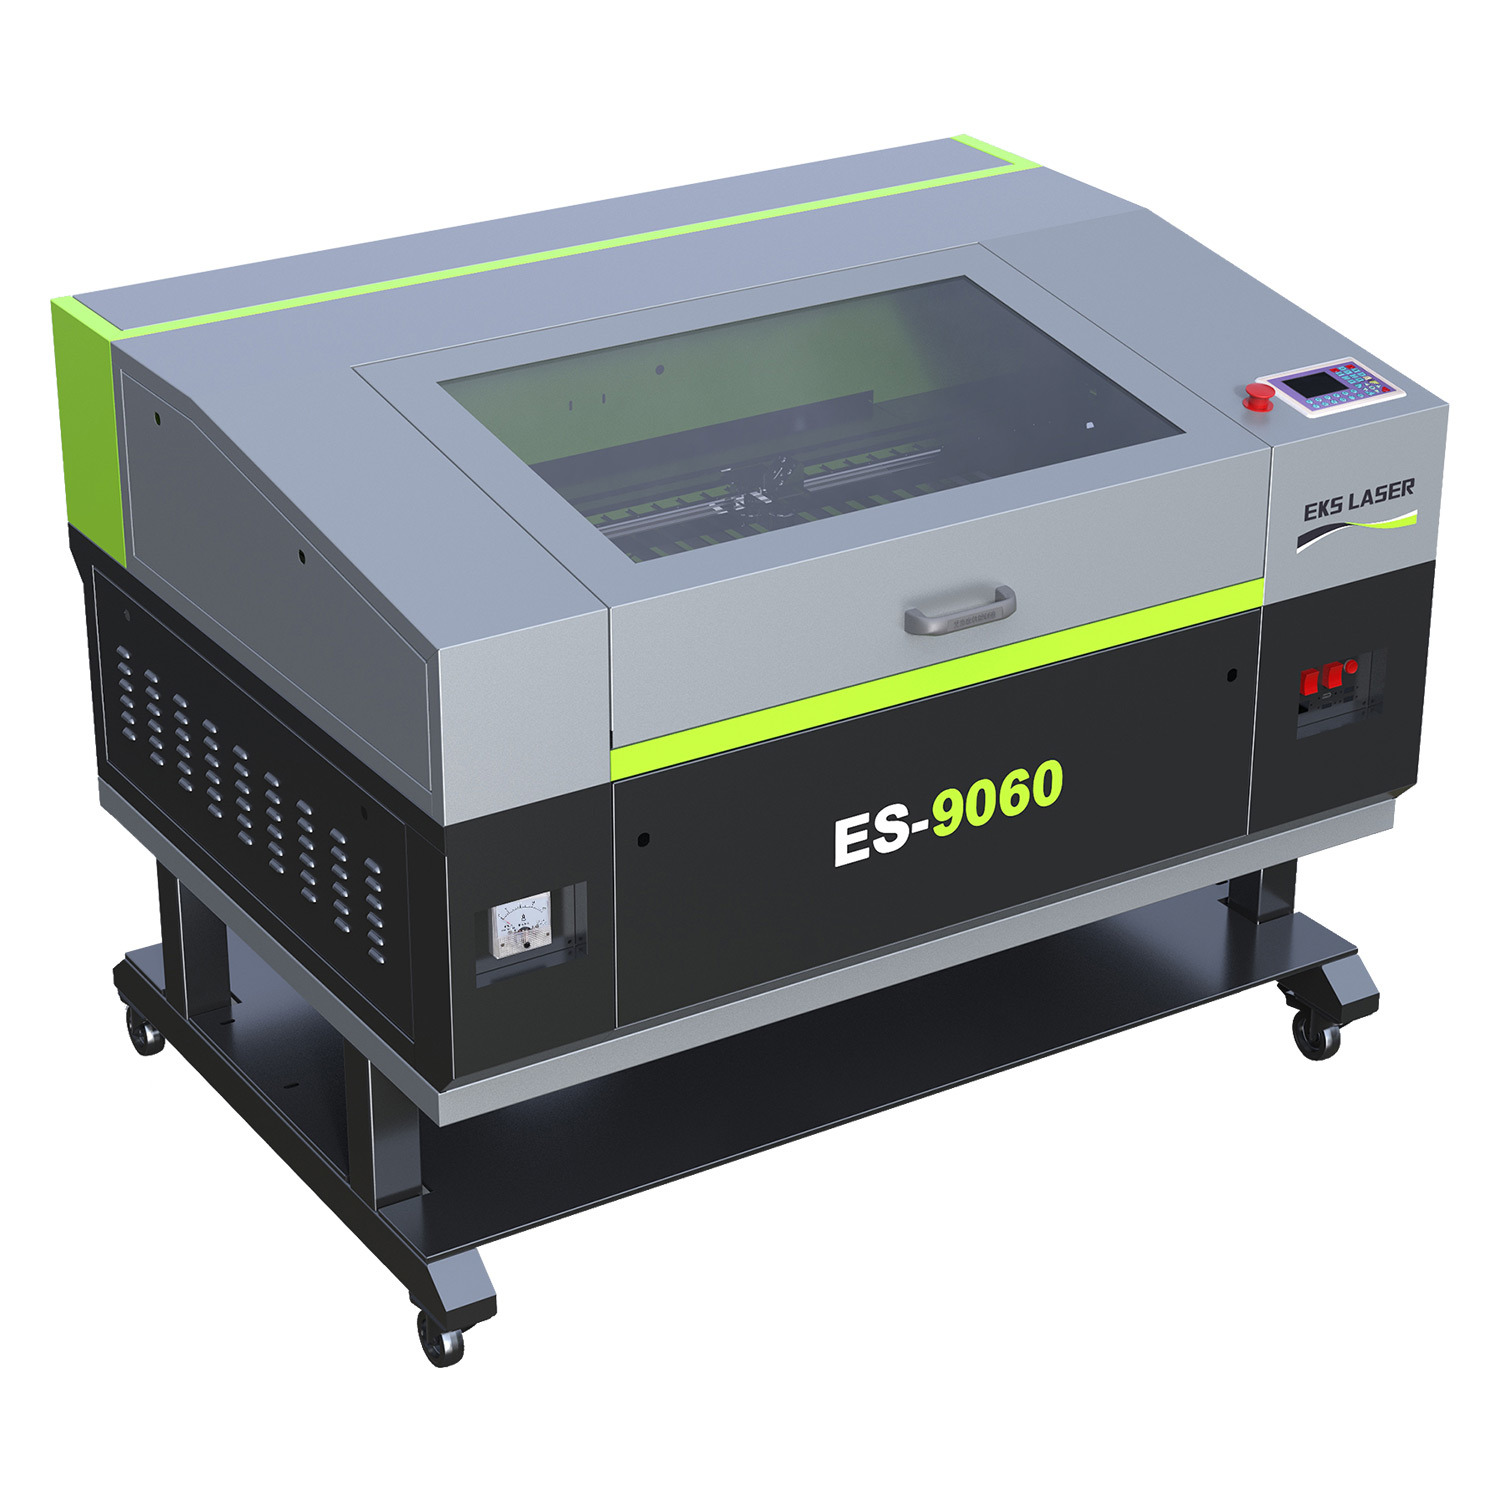 Wood Acrylic Nonmetal of New Top Quality of CO2 Laser Cutting Machine Es-9060